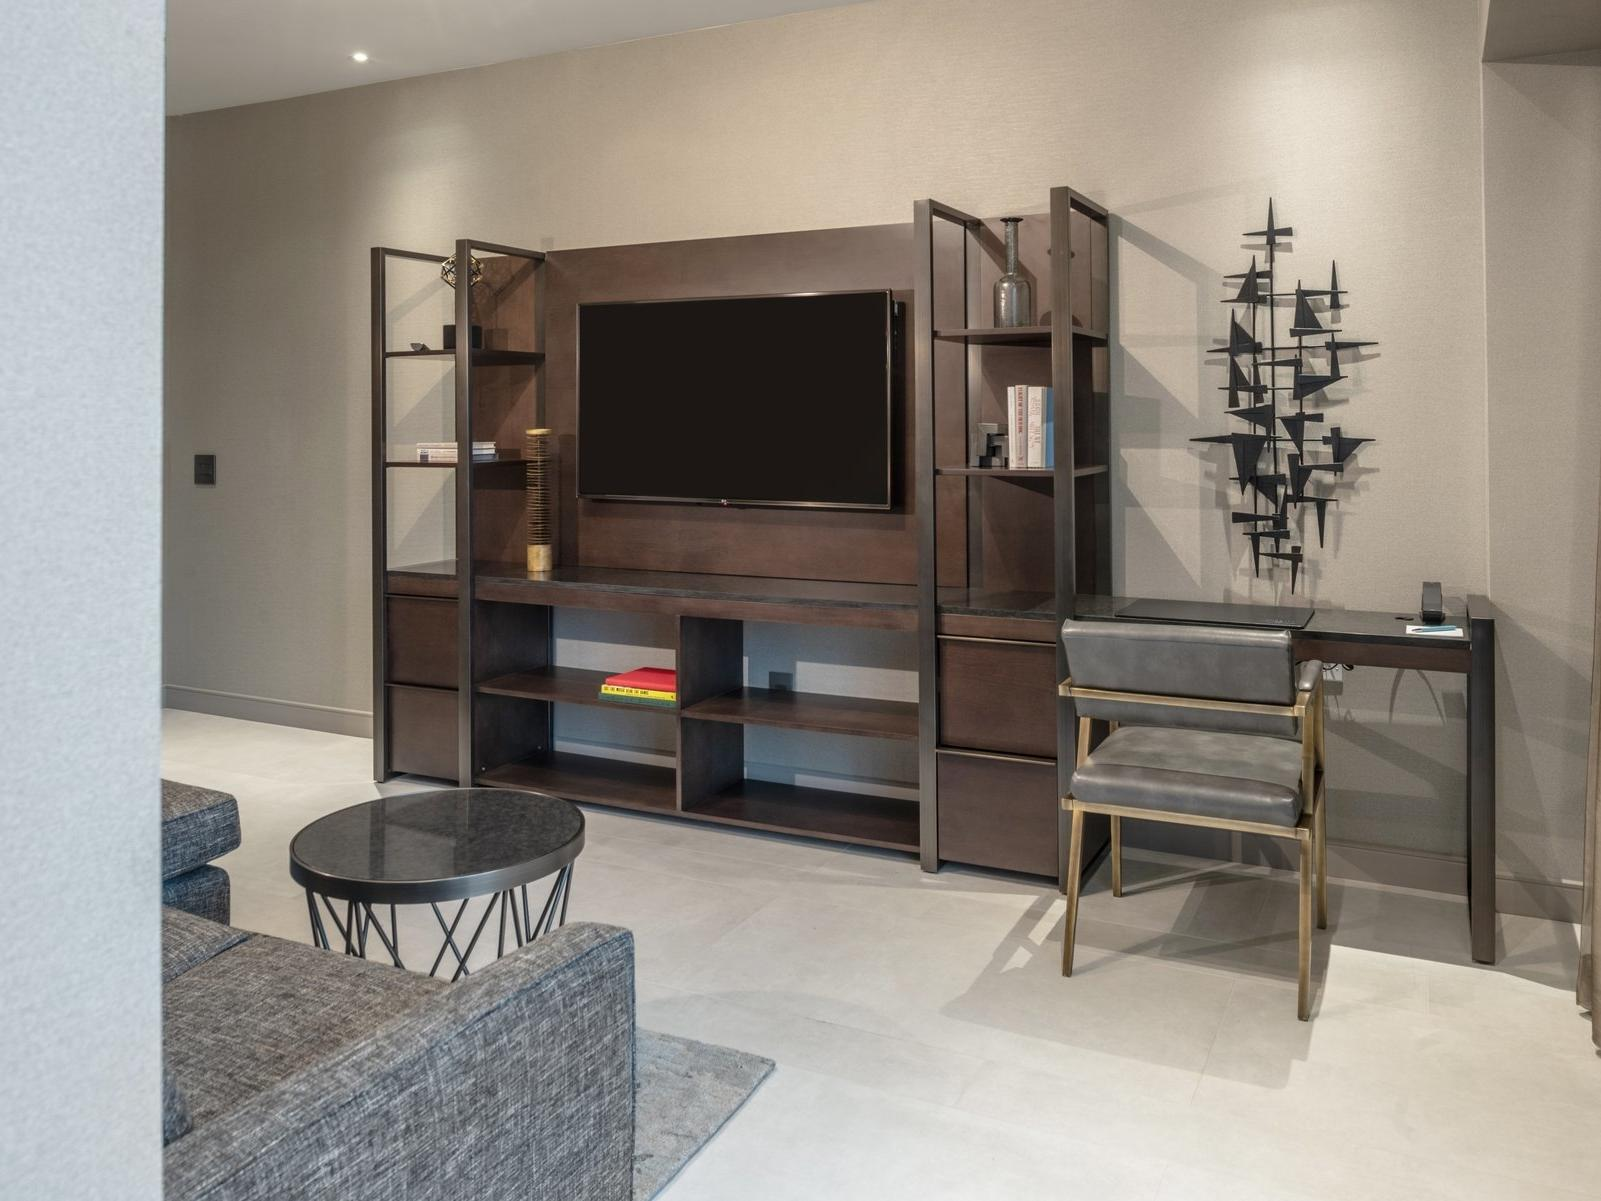 TV unit and desk with chair